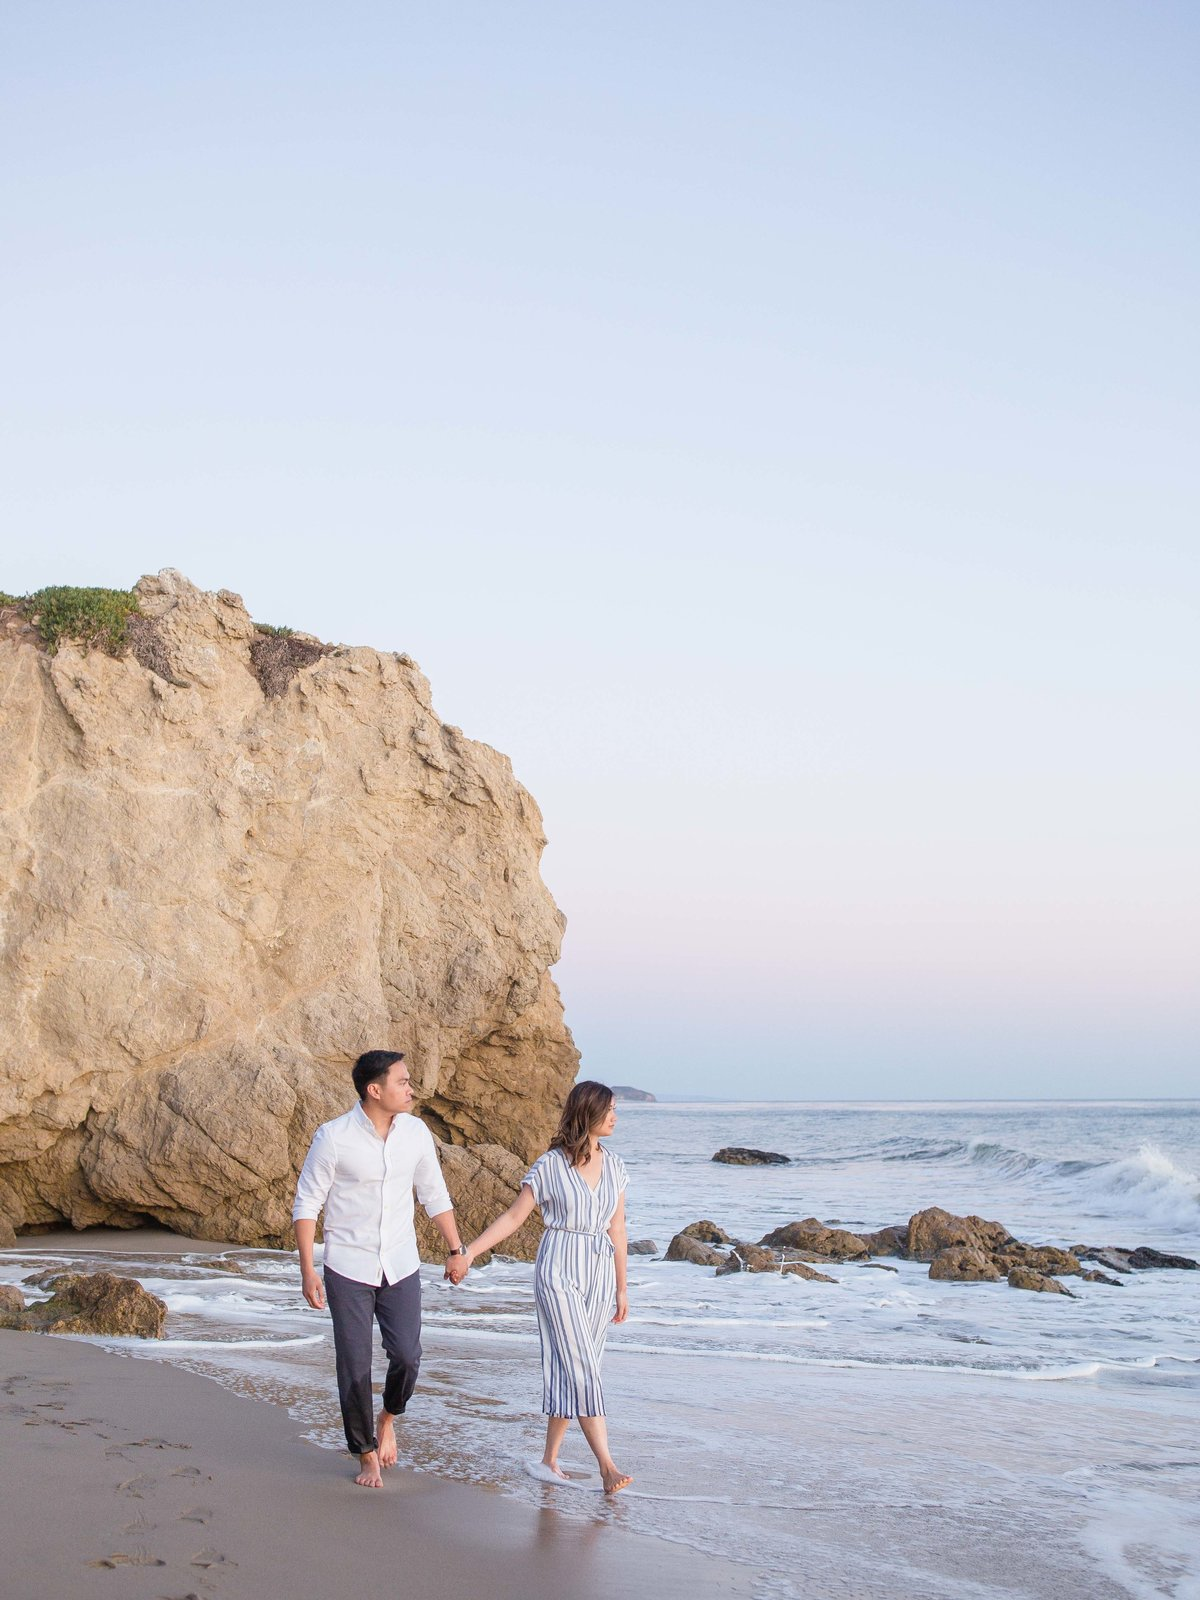 Babsie-Ly-Photography-malibu-el-matador-beach-Engagement-Session-Film-Asian-Photographer-001